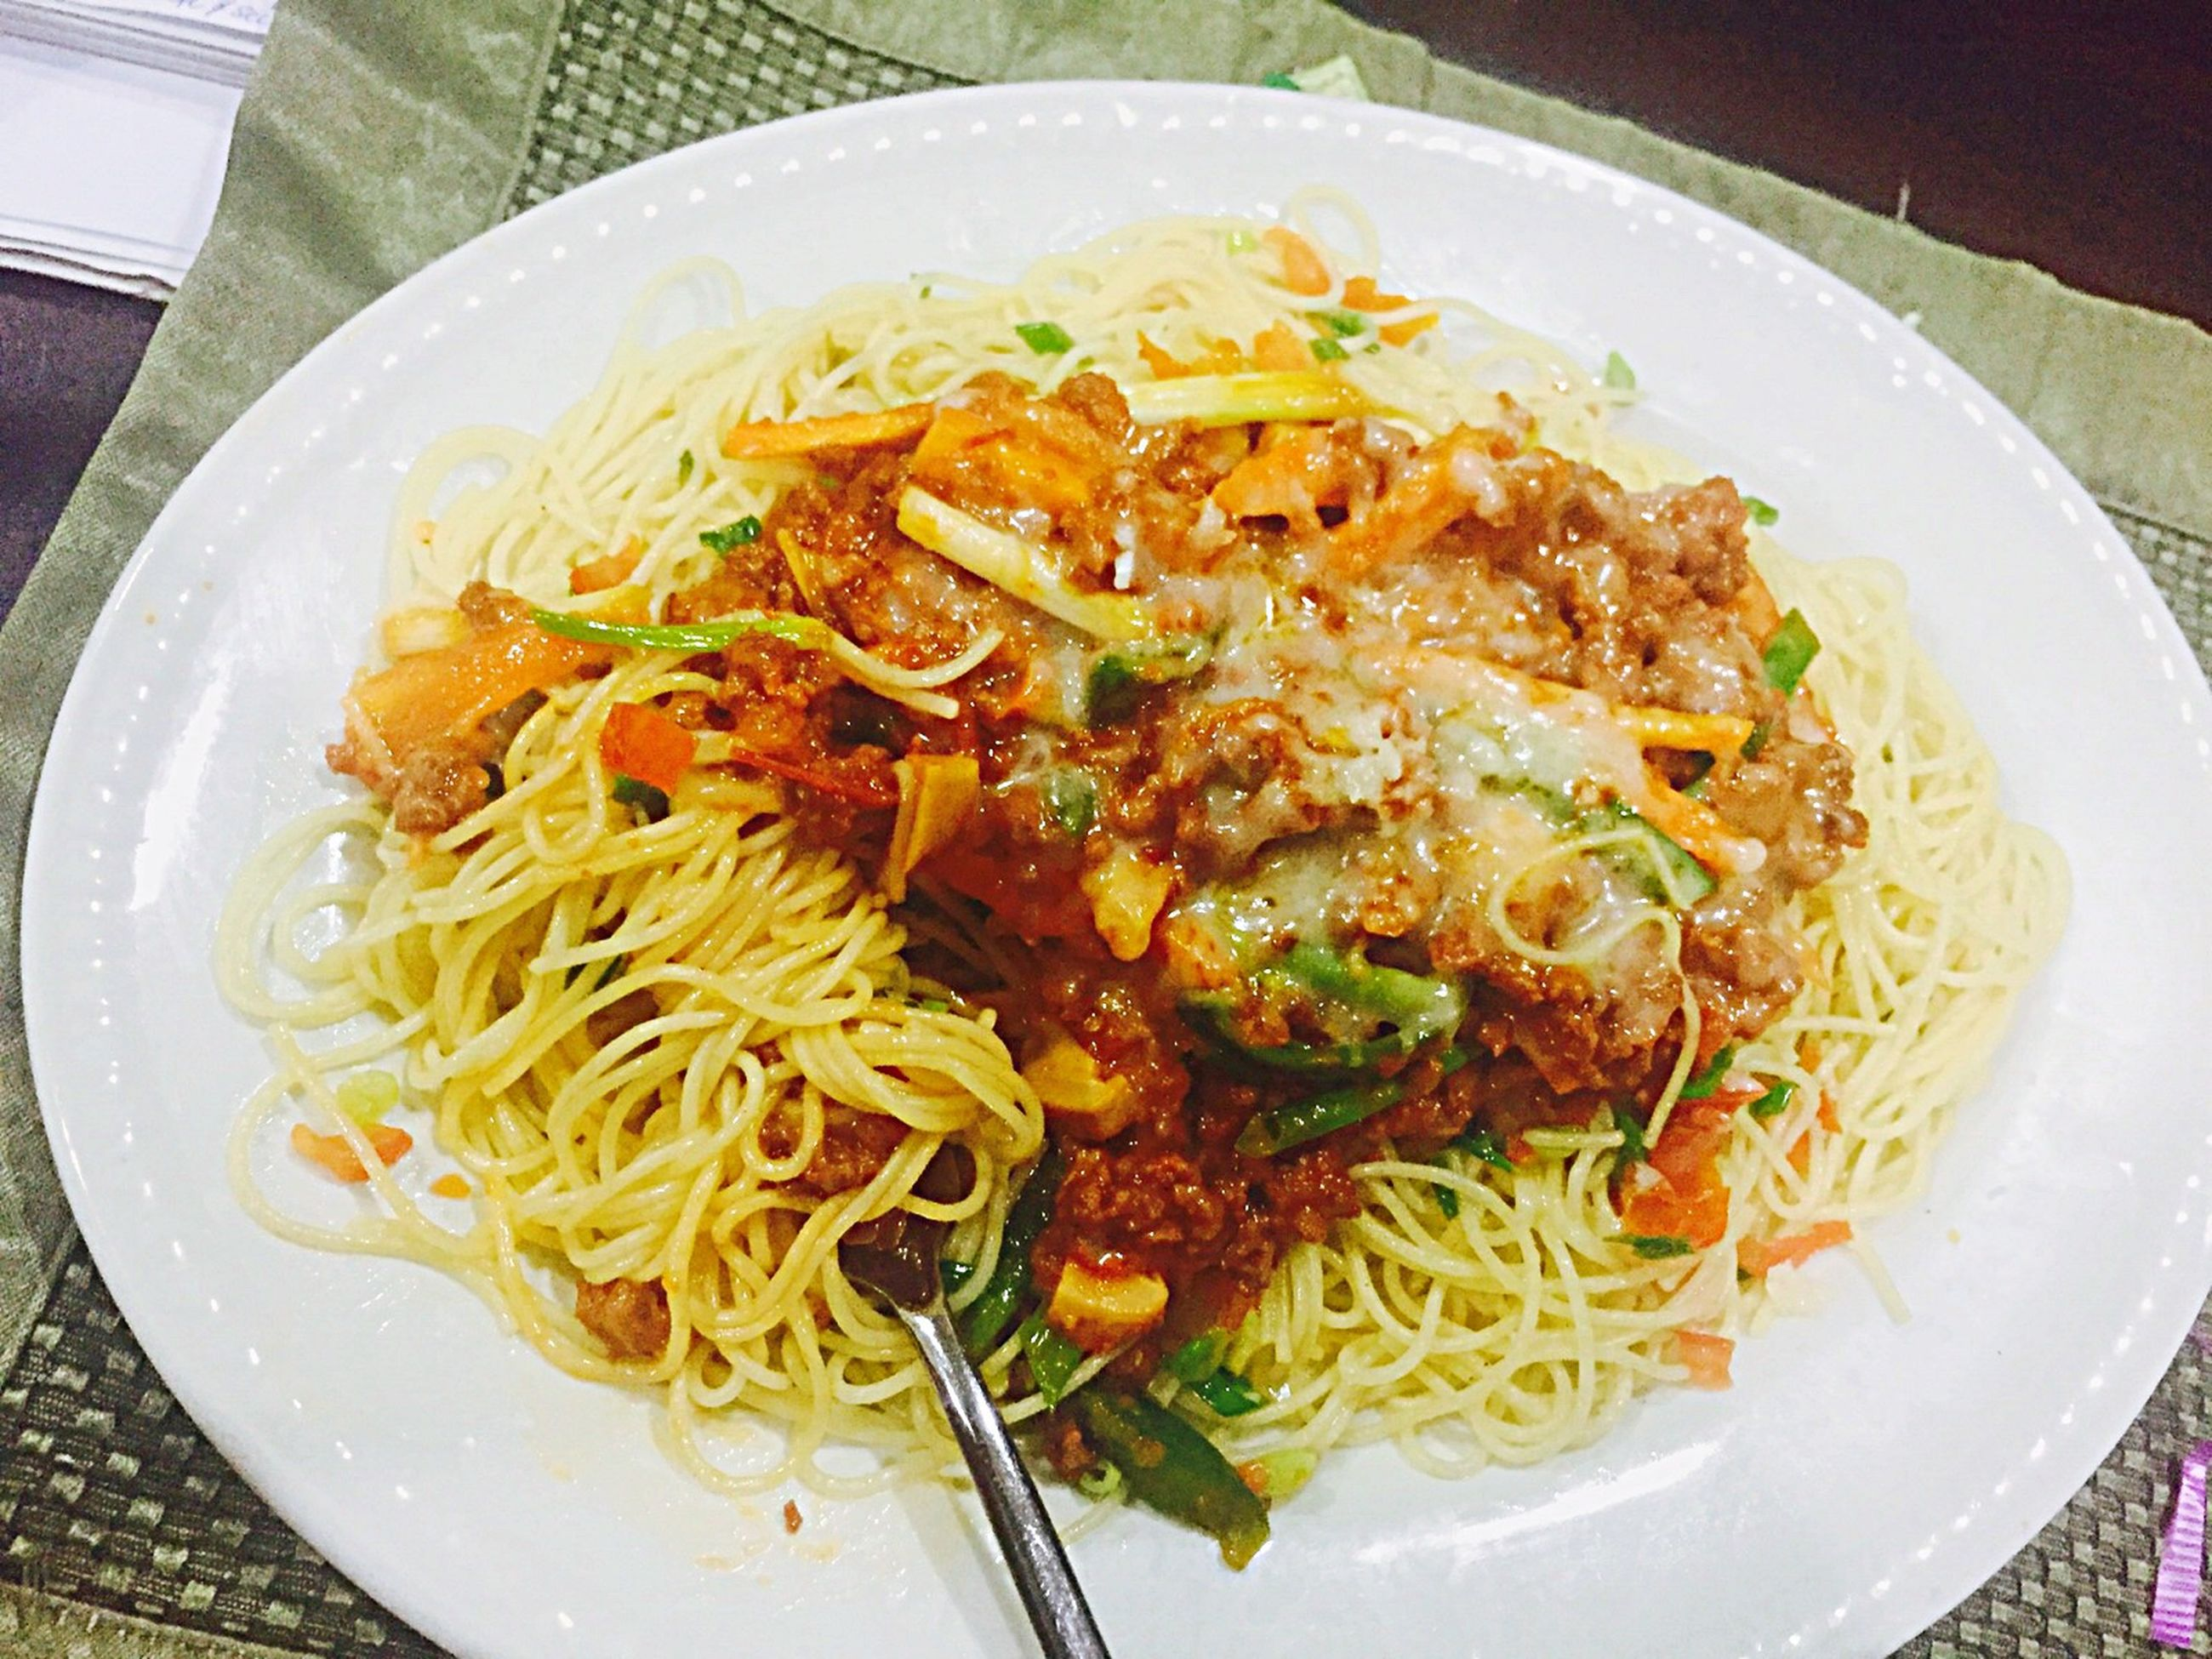 food, food and drink, indoors, ready-to-eat, freshness, plate, meal, noodles, serving size, close-up, healthy eating, pasta, high angle view, still life, meat, table, bowl, indulgence, cooked, spaghetti